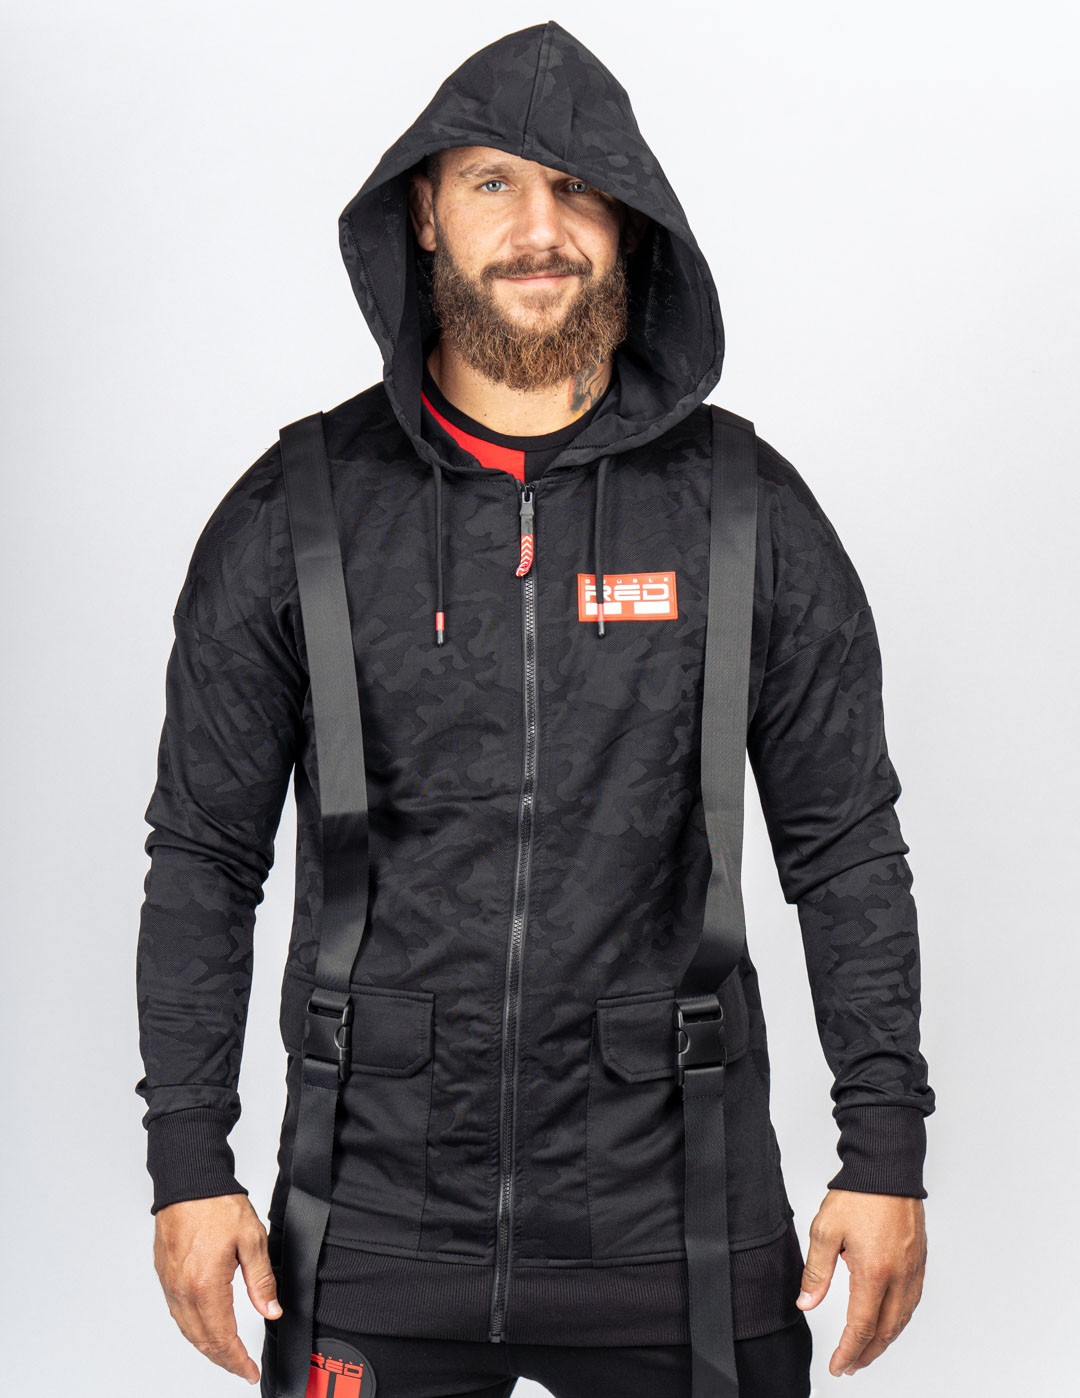 The Punisher WORLD WIDE Jacket